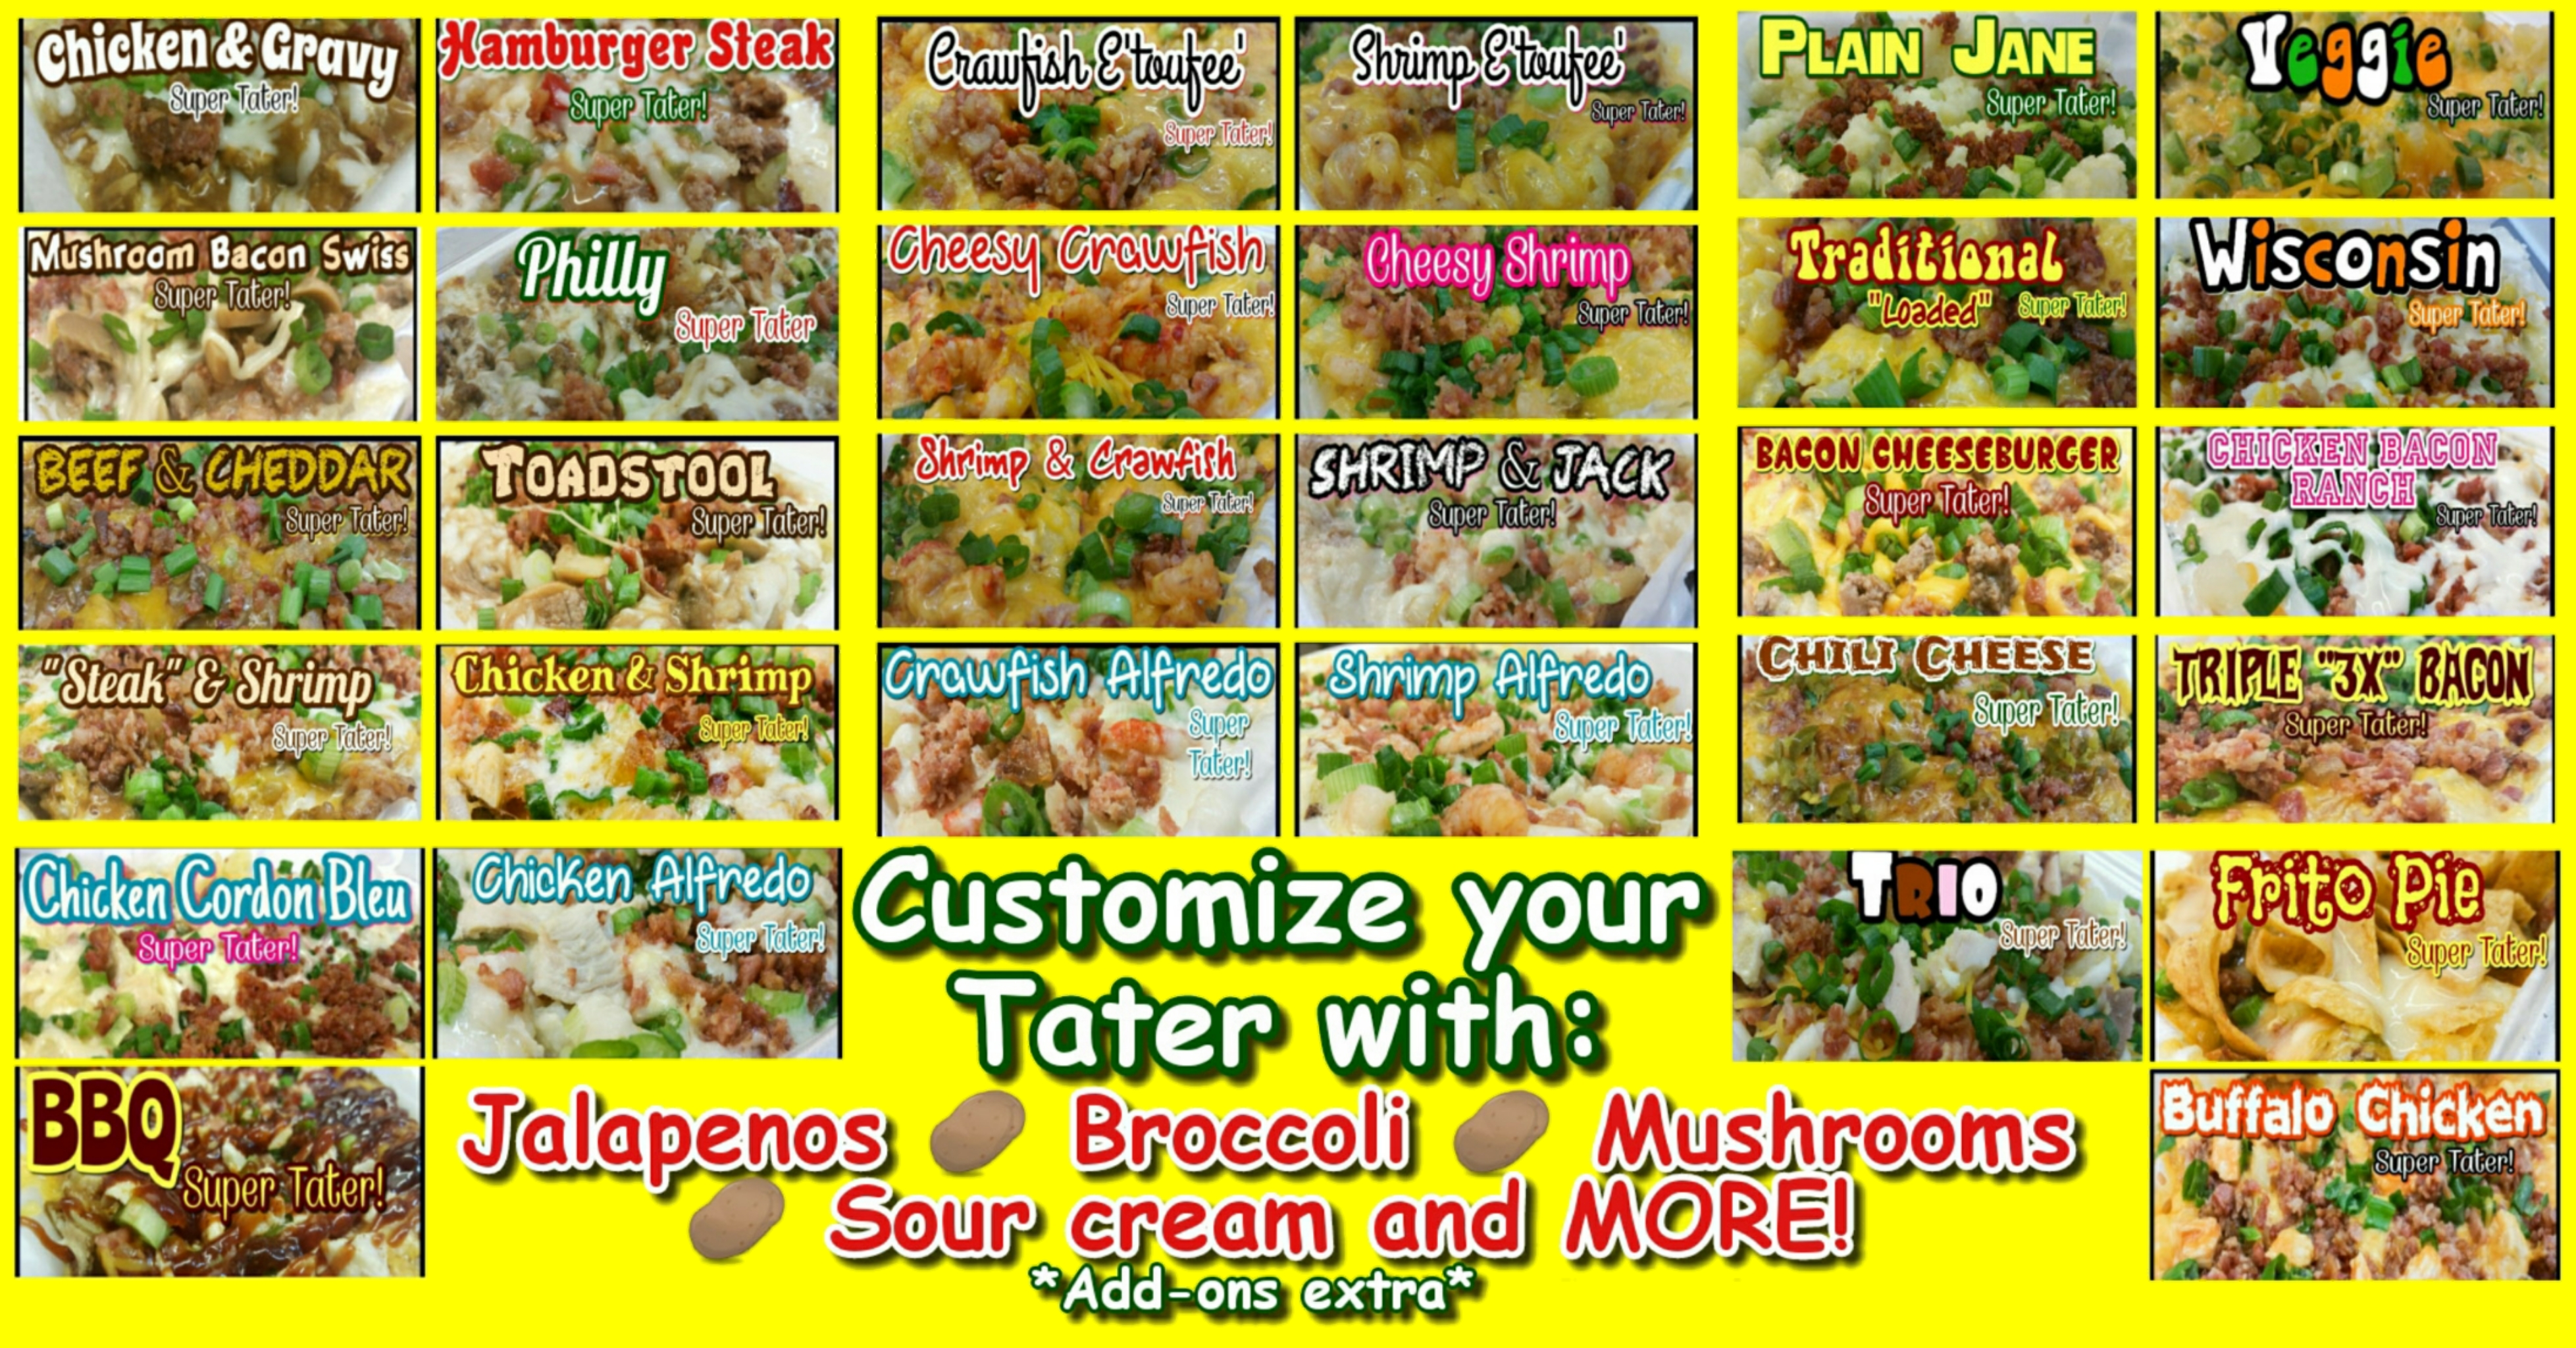 Super Tater picture menu 1